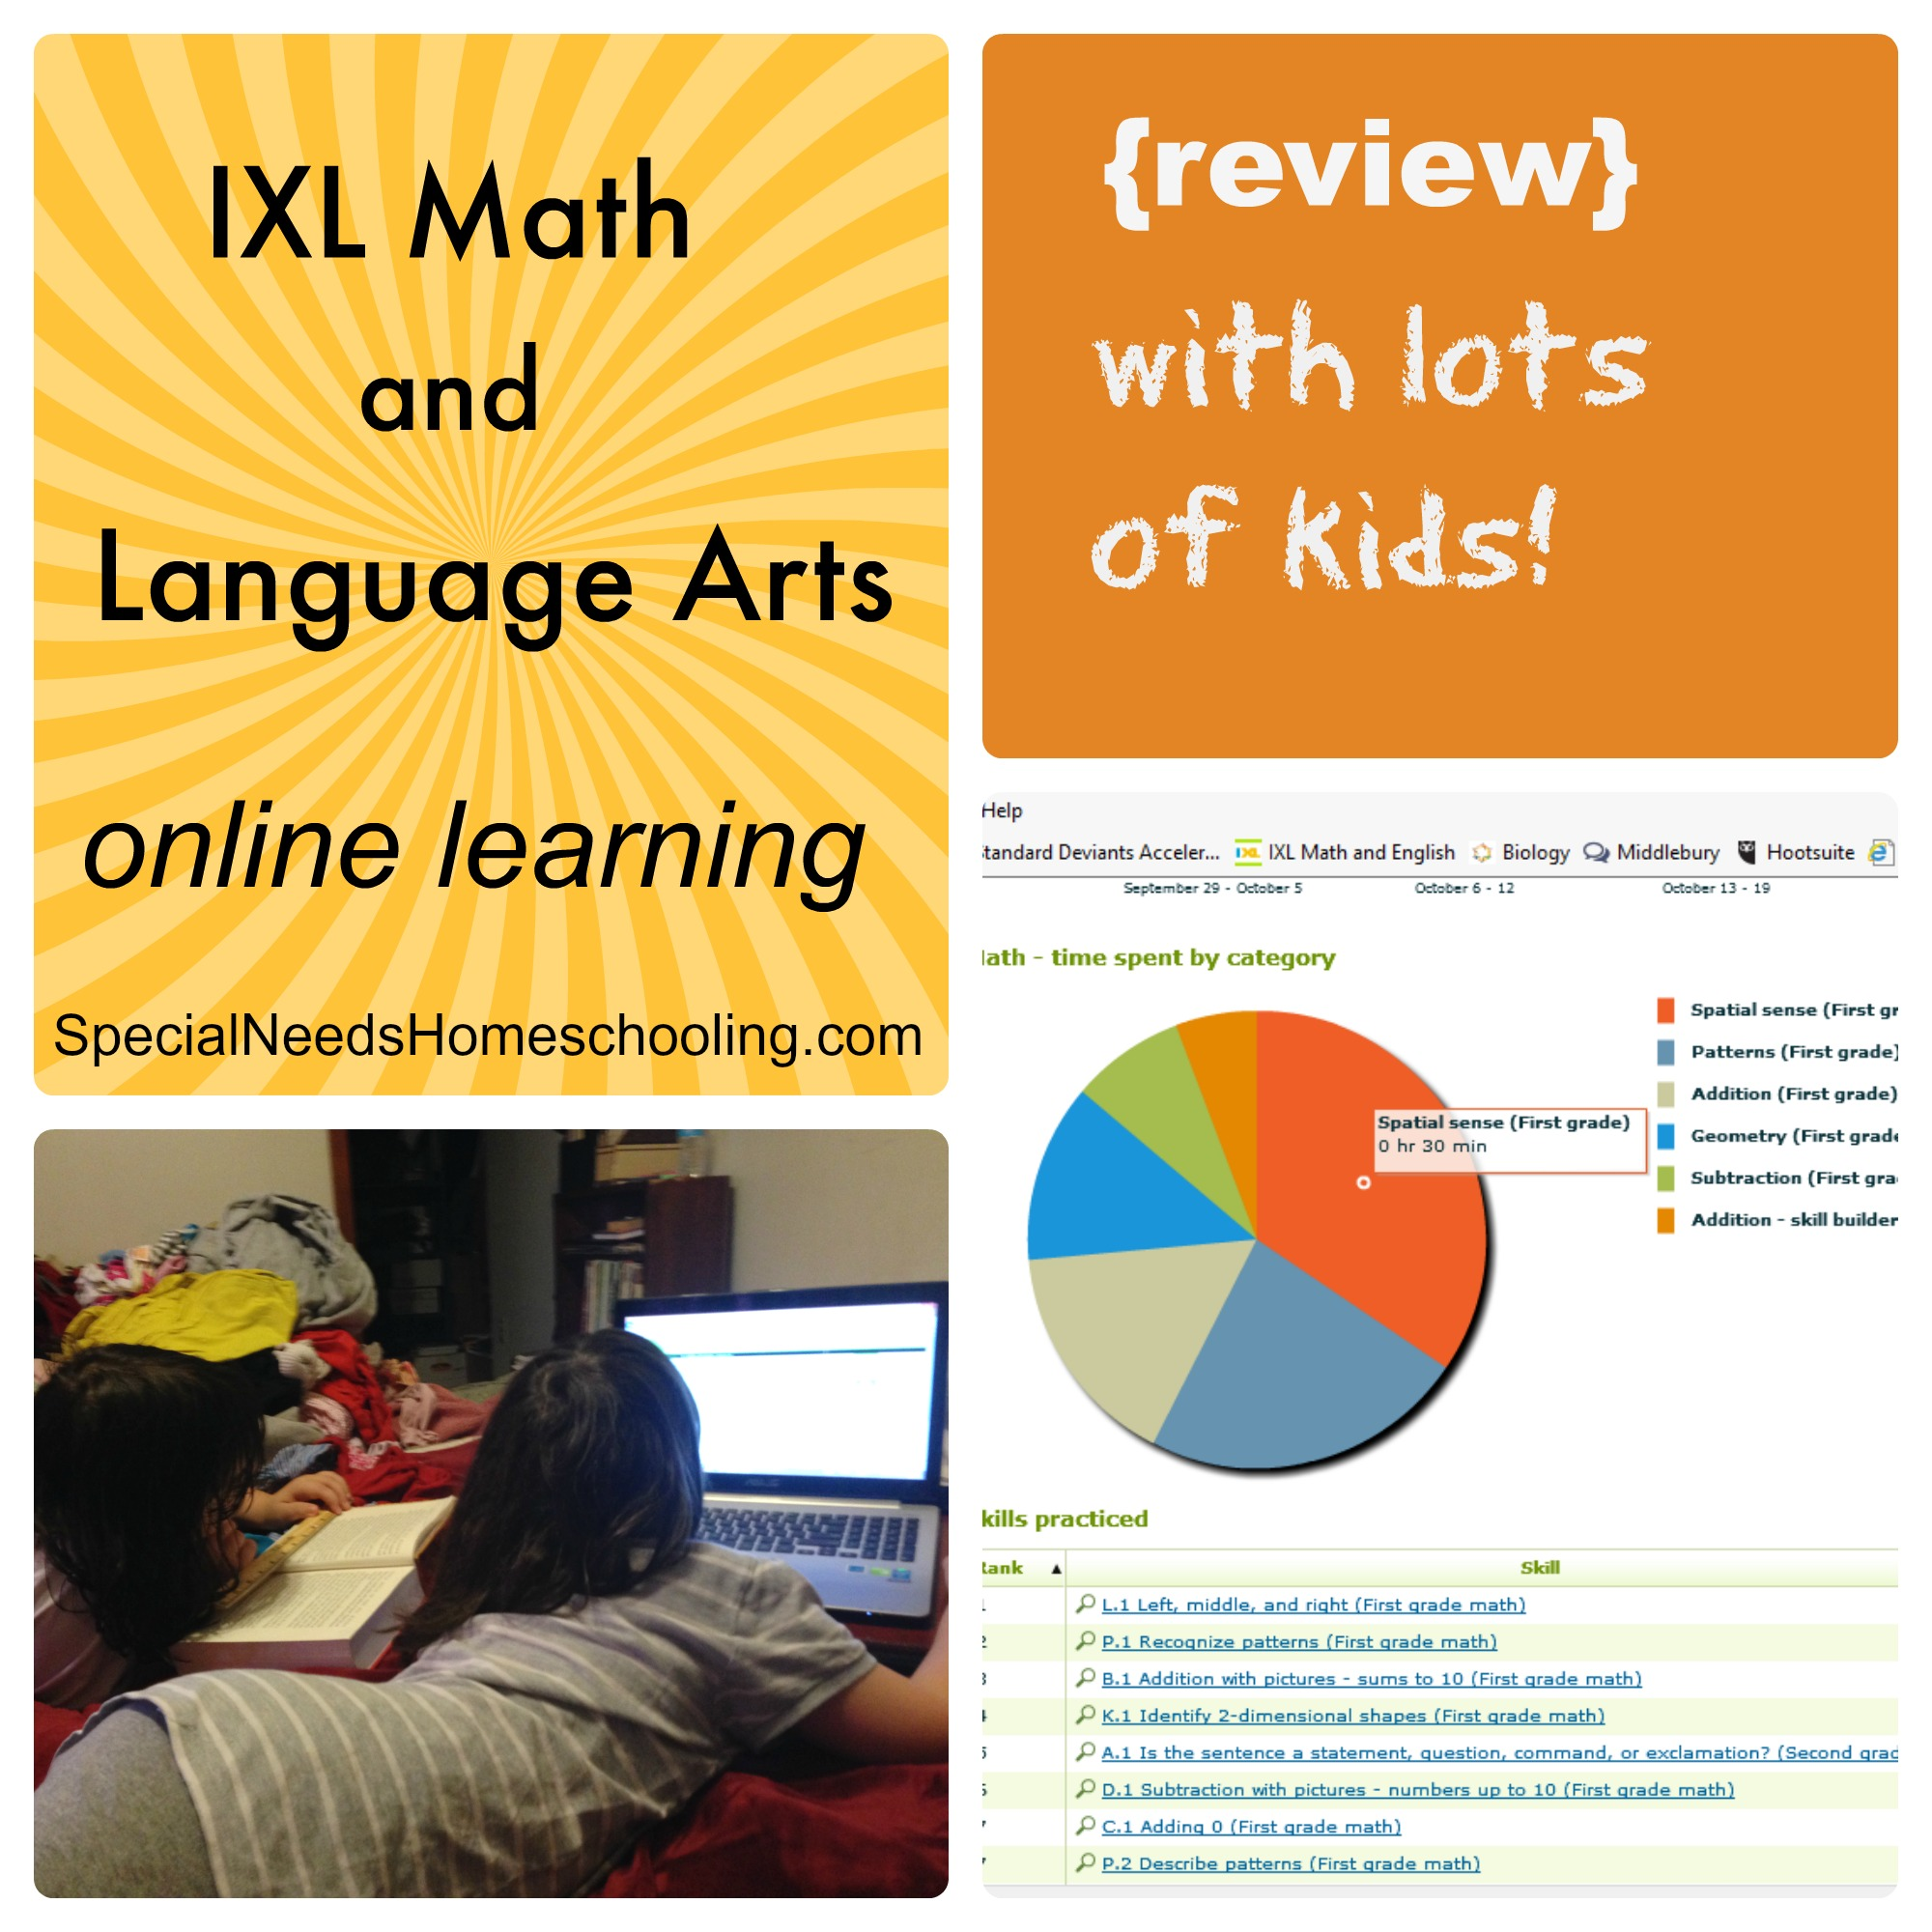 Ixl Math And Language Arts Online Learning Review